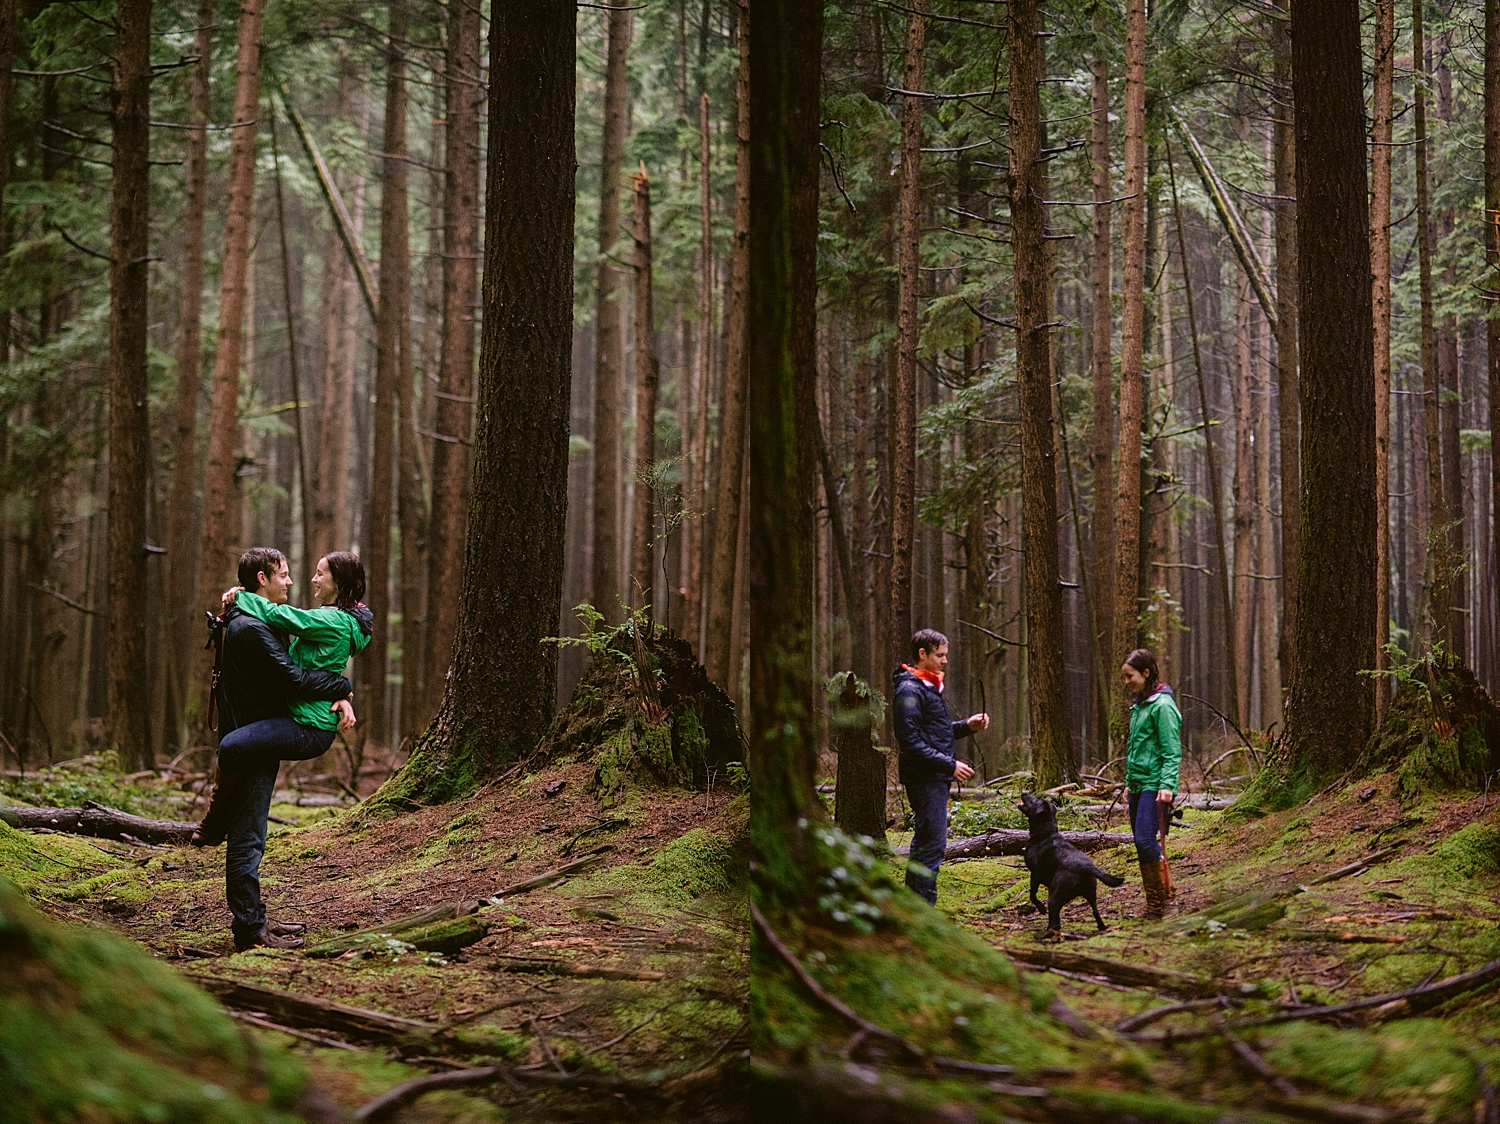 british columbia - pacific spirit park - engagement shoot - vancouver b.c.- maylies lang photography -27.jpg